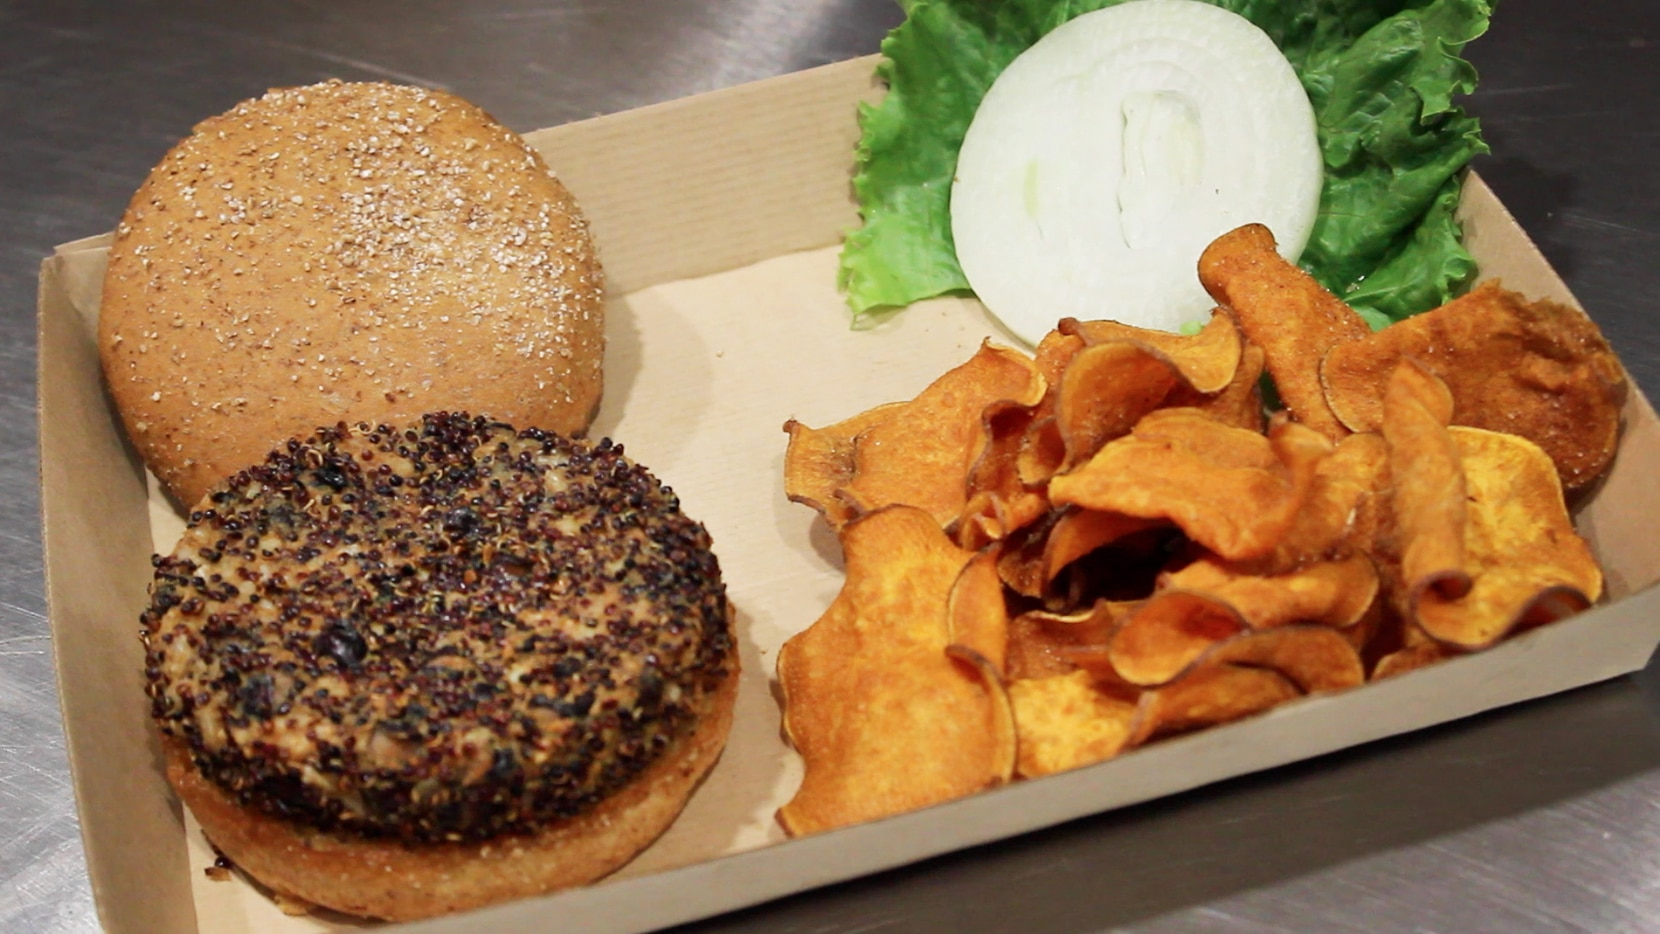 Twisted Root now serves a vegan burger.